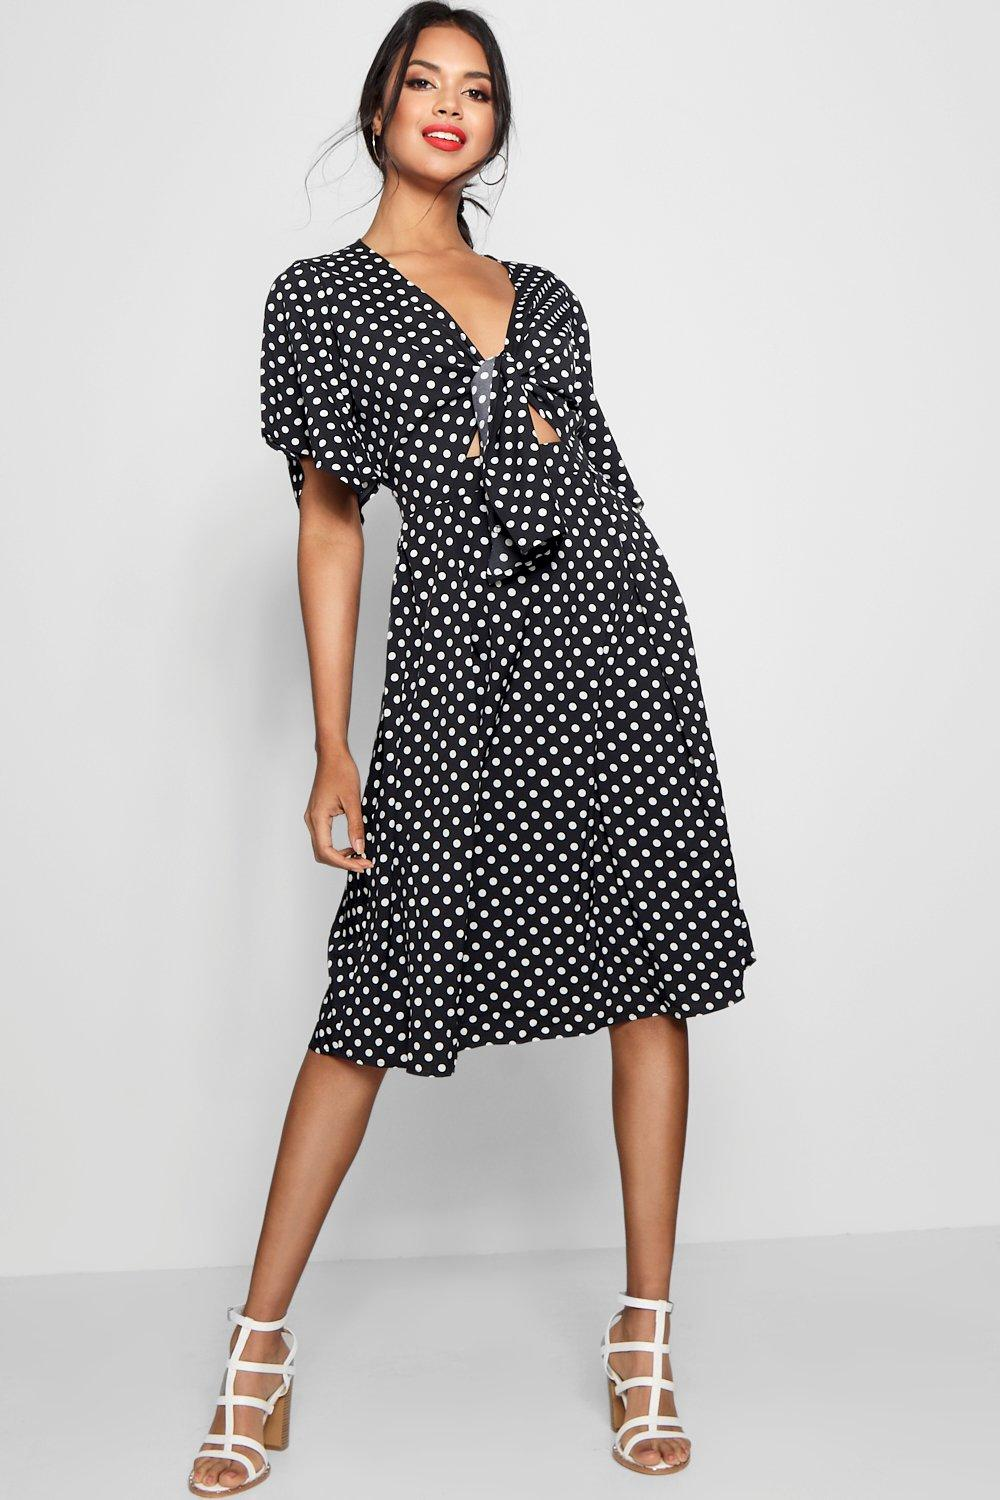 6ae74927ce52 Knot Front Polka Dot Midi Dress. Hover to zoom